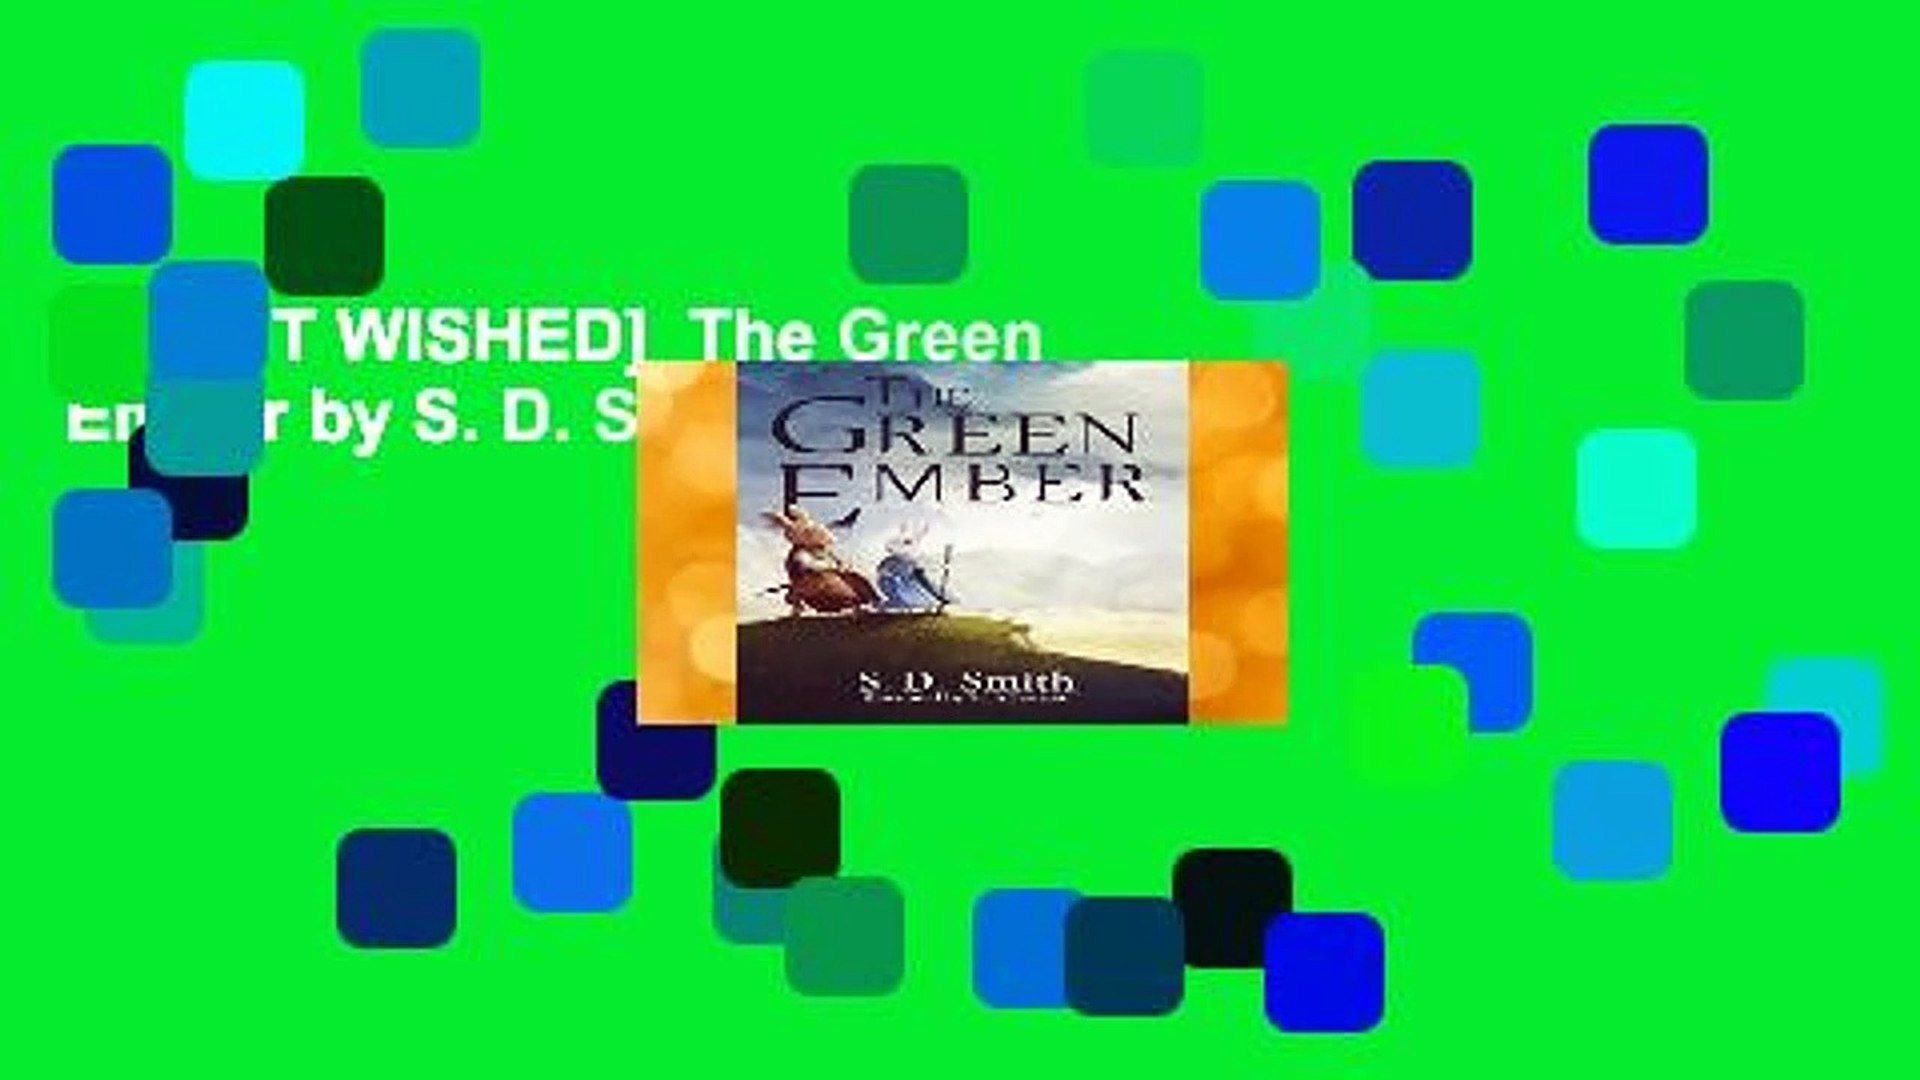 [MOST WISHED]  The Green Ember by S. D. Smith